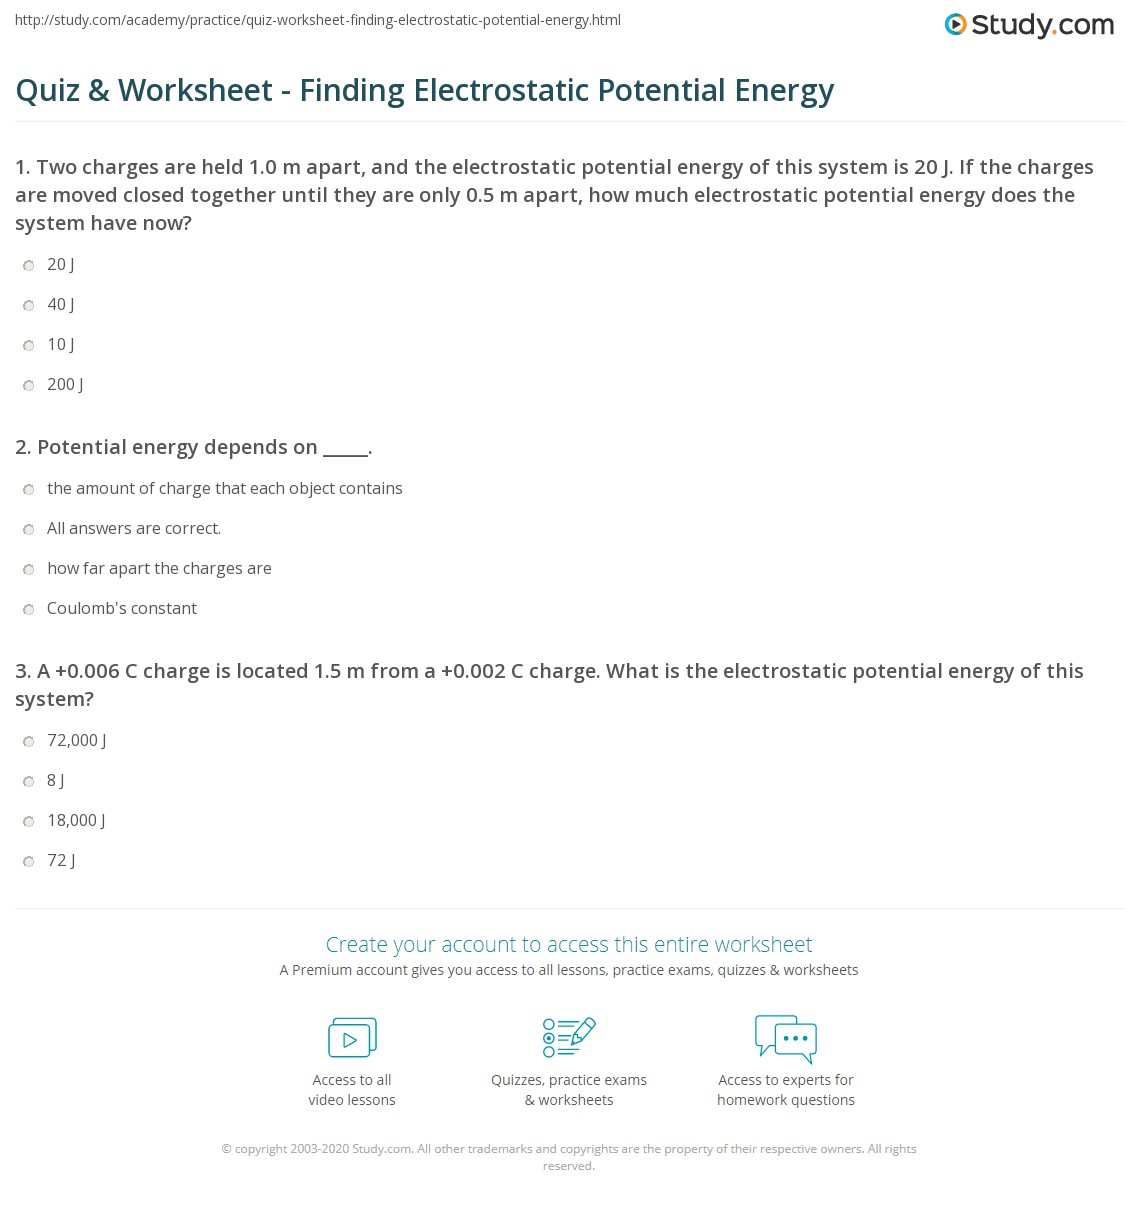 Free Worksheet Electrostatics Worksheet quiz worksheet finding electrostatic potential energy study com 1 two spheres each with a charge of 0 c are held 5 m apart if one the charges is replaced by an identical sphere with